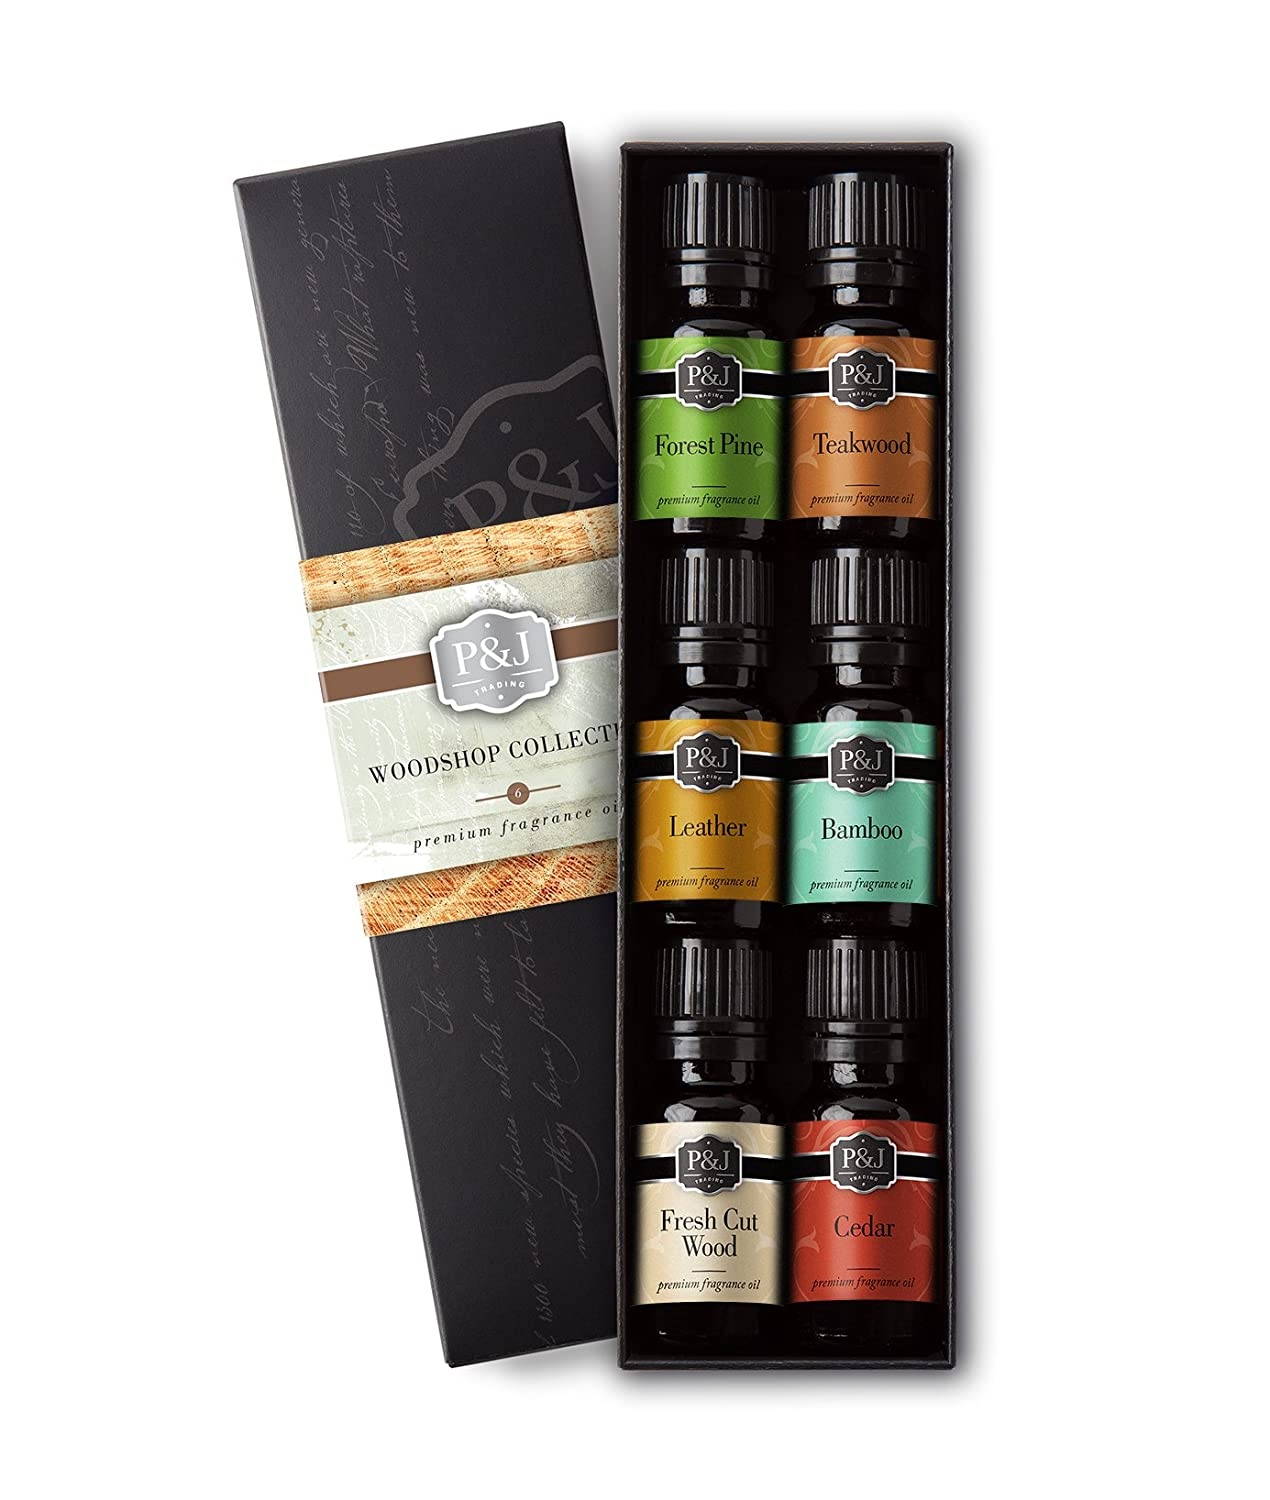 Woodshop Set of 6 Premium Grade Fragrance Oils - Forest Pine, Fresh Cut Wood, Leather, Teakwood, Bamboo, Cedar